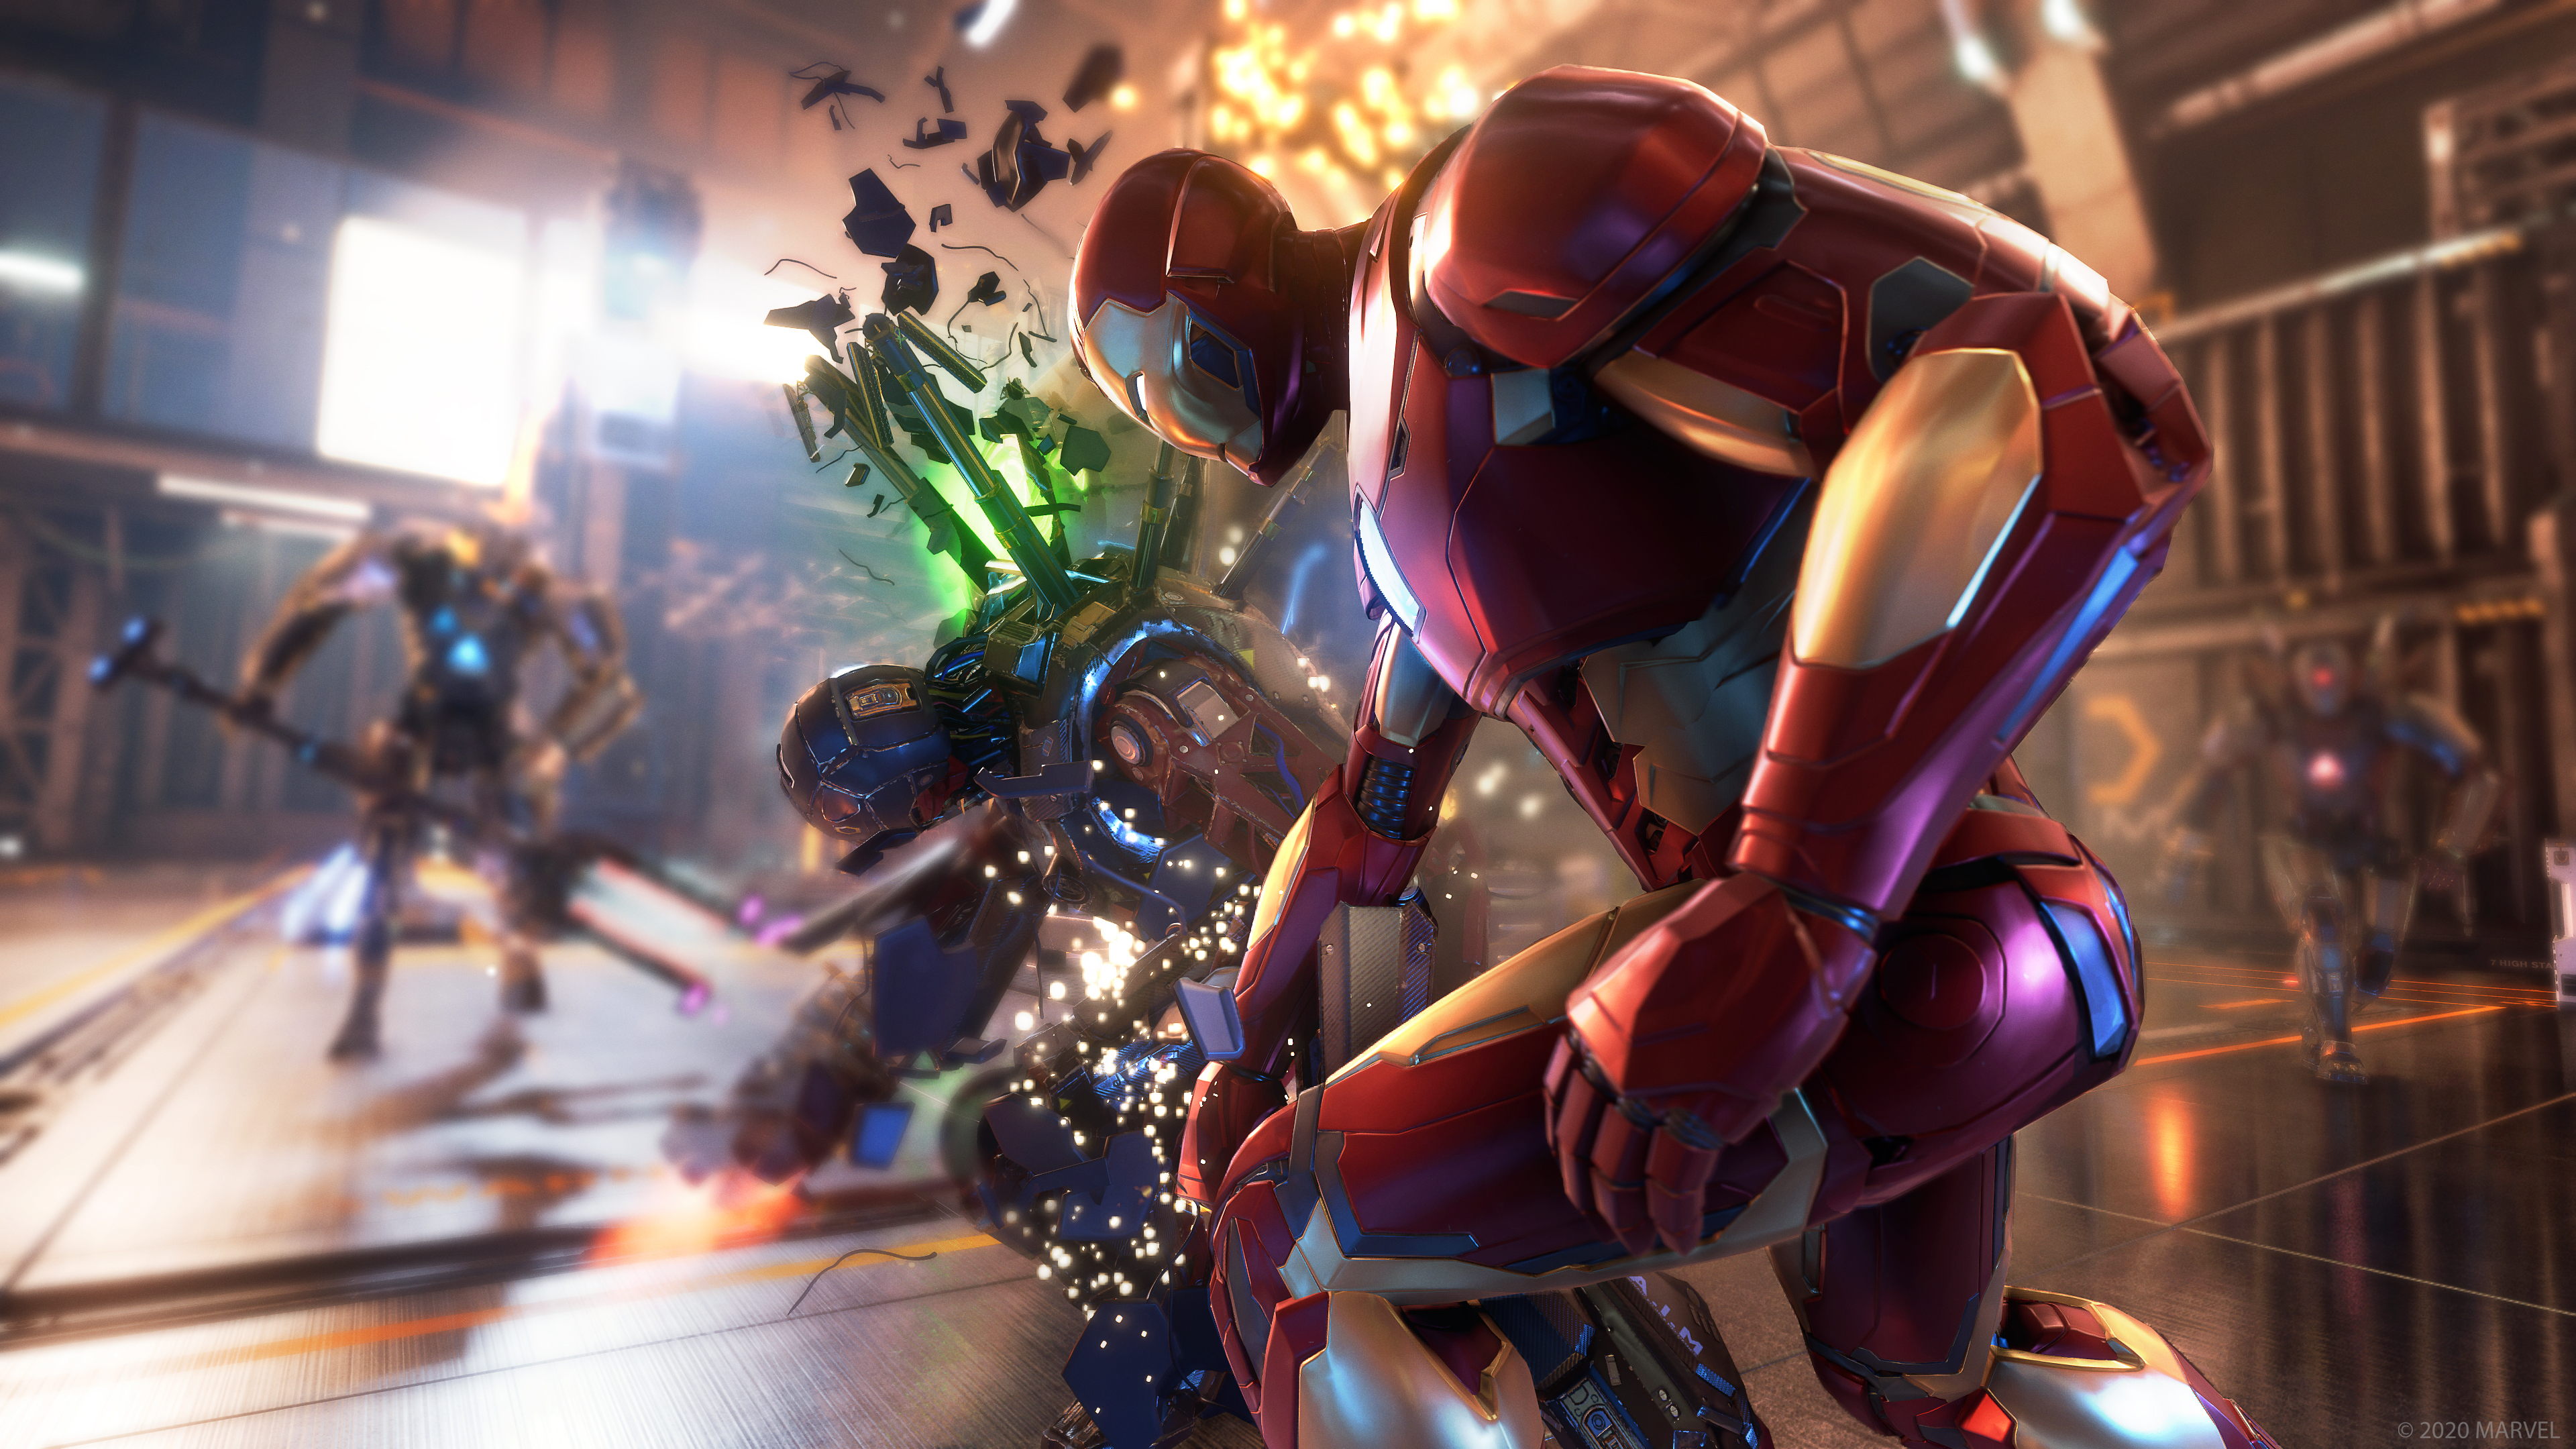 Virgin Media to Offer Customers Marvel's Avengers Beta Access This Weekend